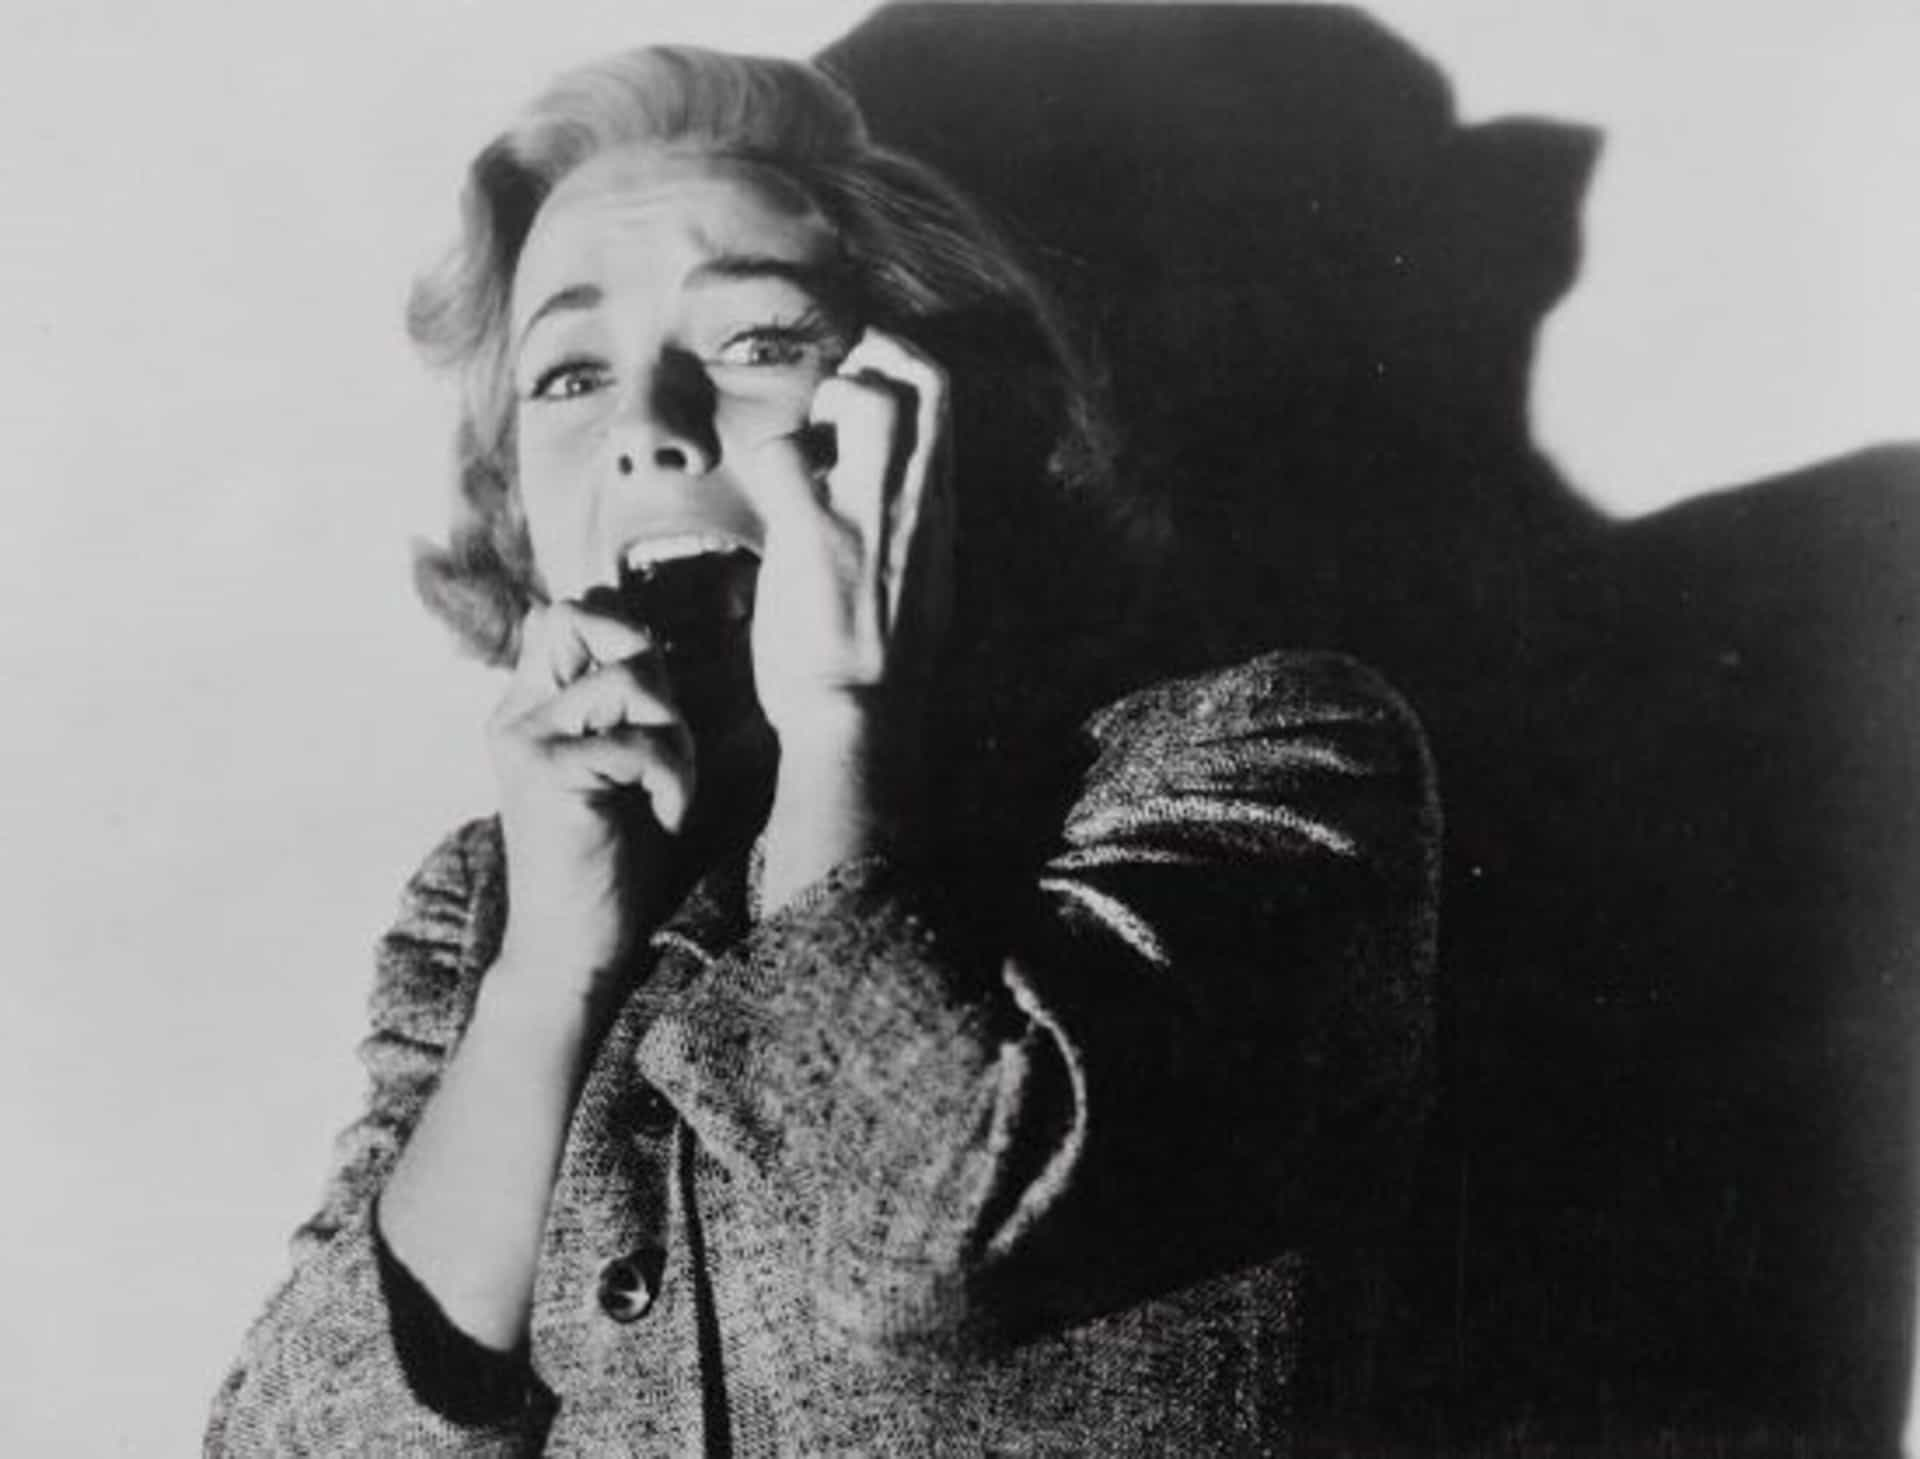 Bizarre film facts you probably didn't know